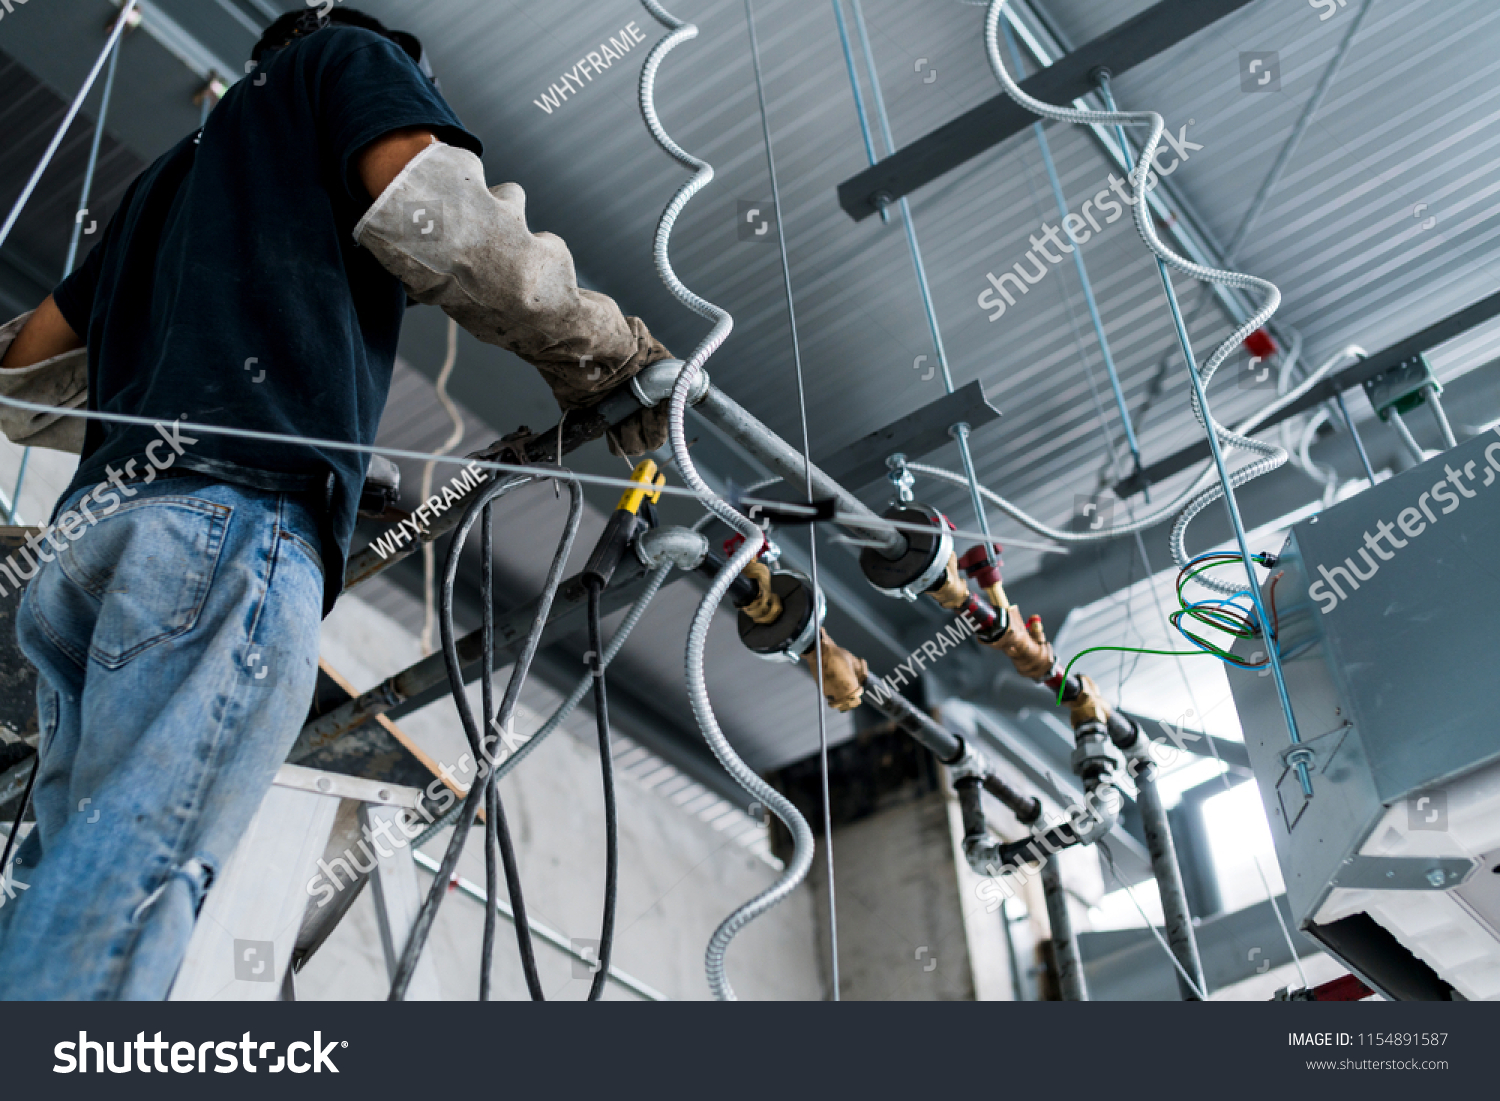 Aricondition Cassette Type Installation Wiring Pipe Stock Photo Types Of Home With And Setting Improvement Ideas Concept